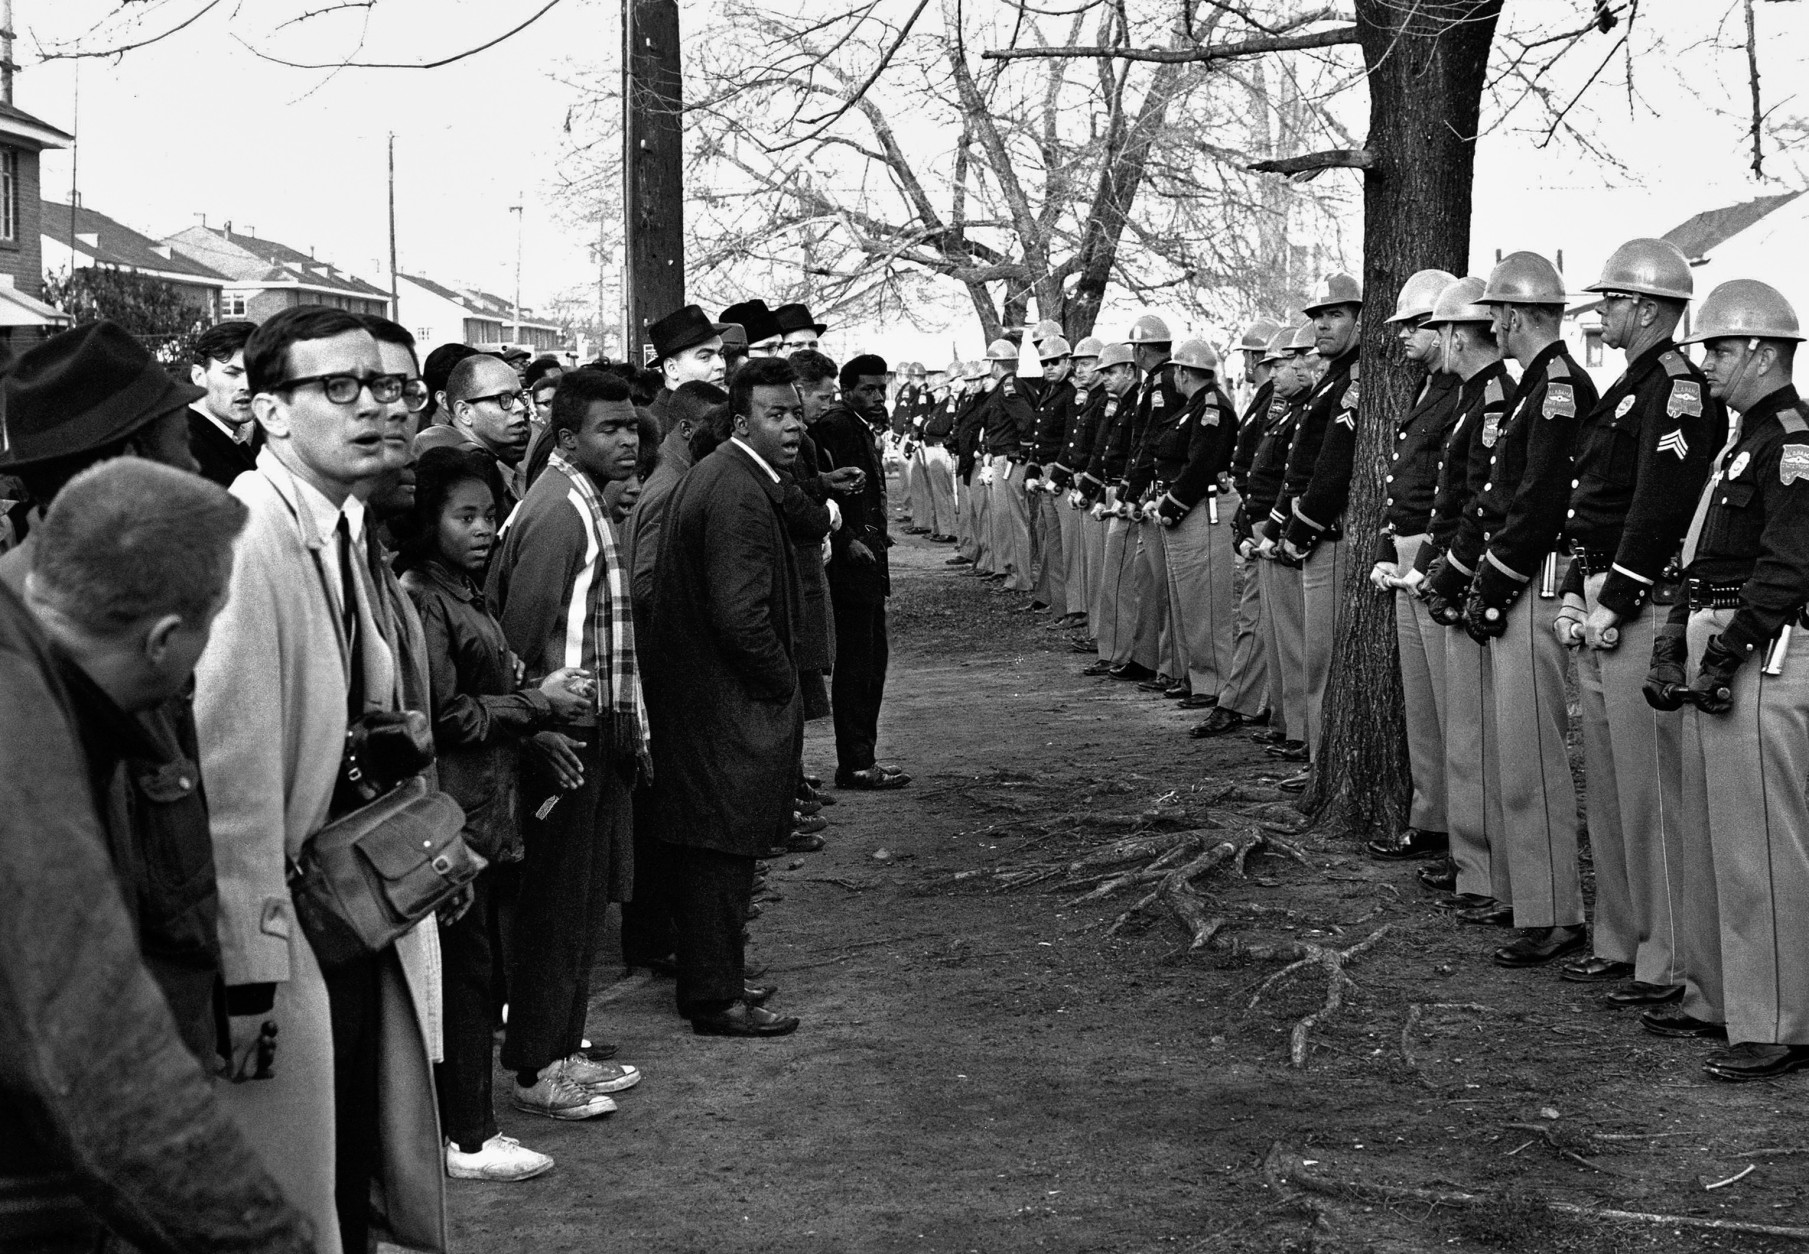 FILE - In this March 13, 1965 file photo, a line of police officers hold back demonstrators who attempted to march to the courthouse in Selma, Ala. Police kept the demonstrators hemmed up in a square block area where they attempted several times to break through. (AP Photo/File)